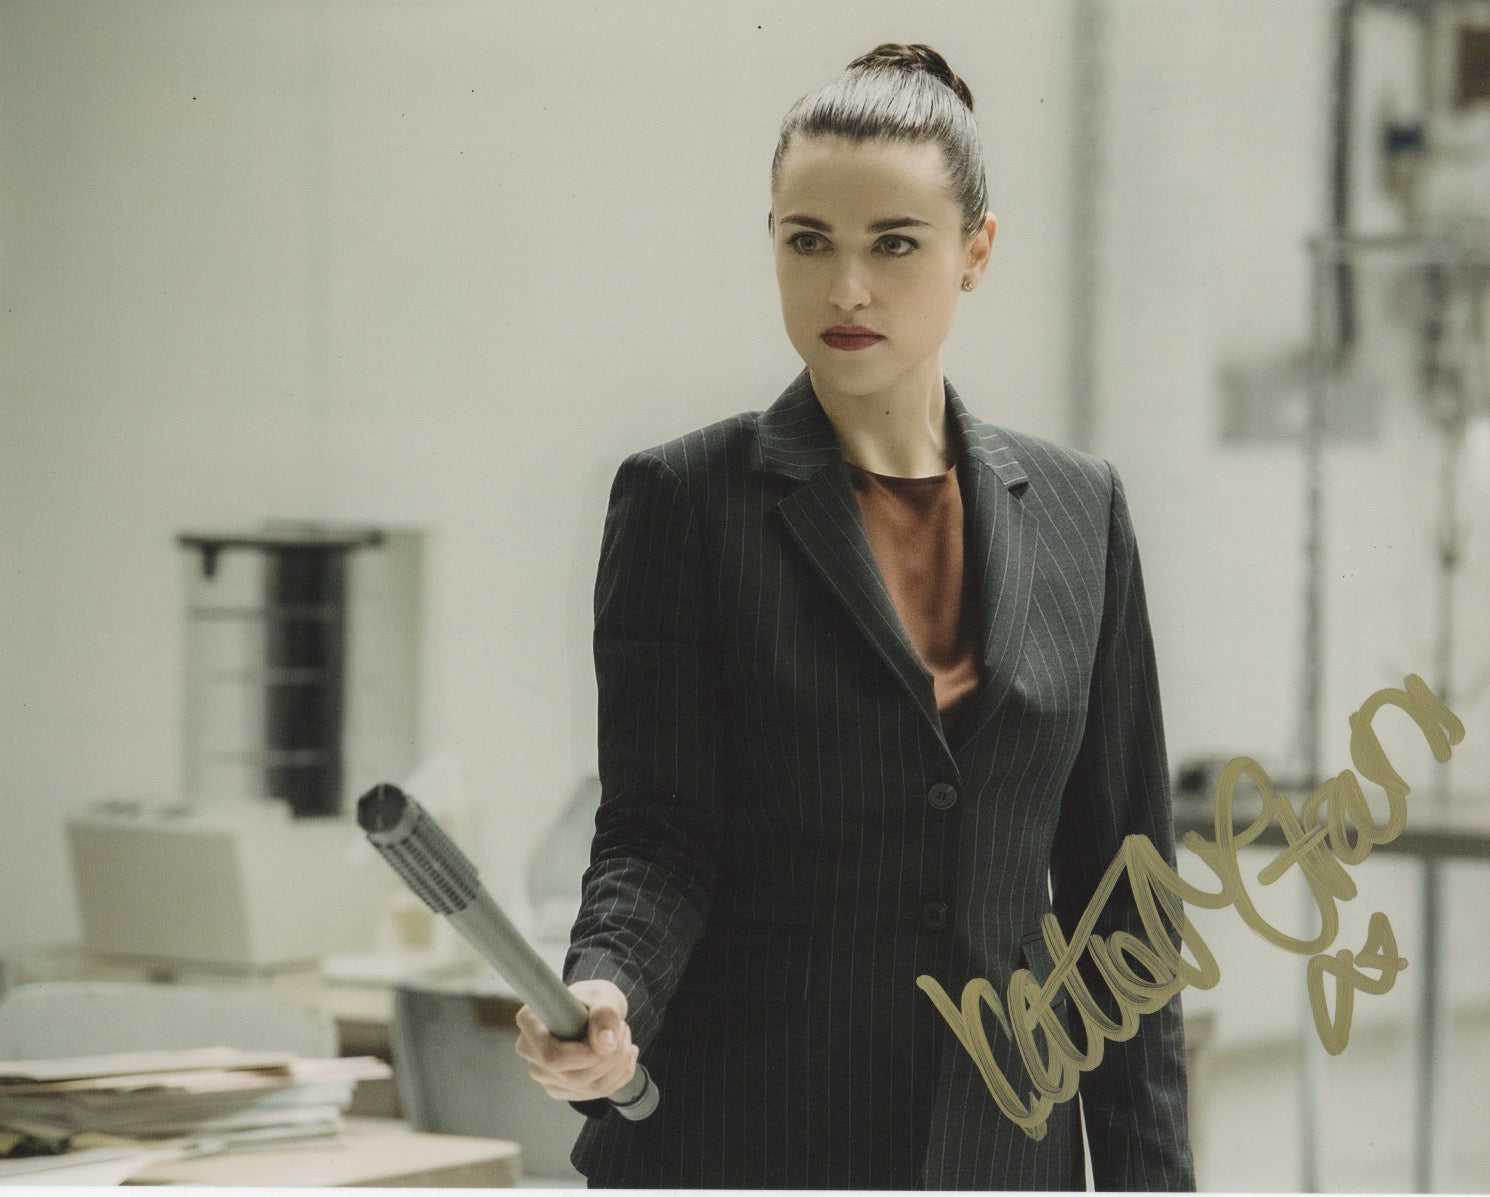 Katie McGrath Supergirl Signed Autograph 8x10 Photo #29